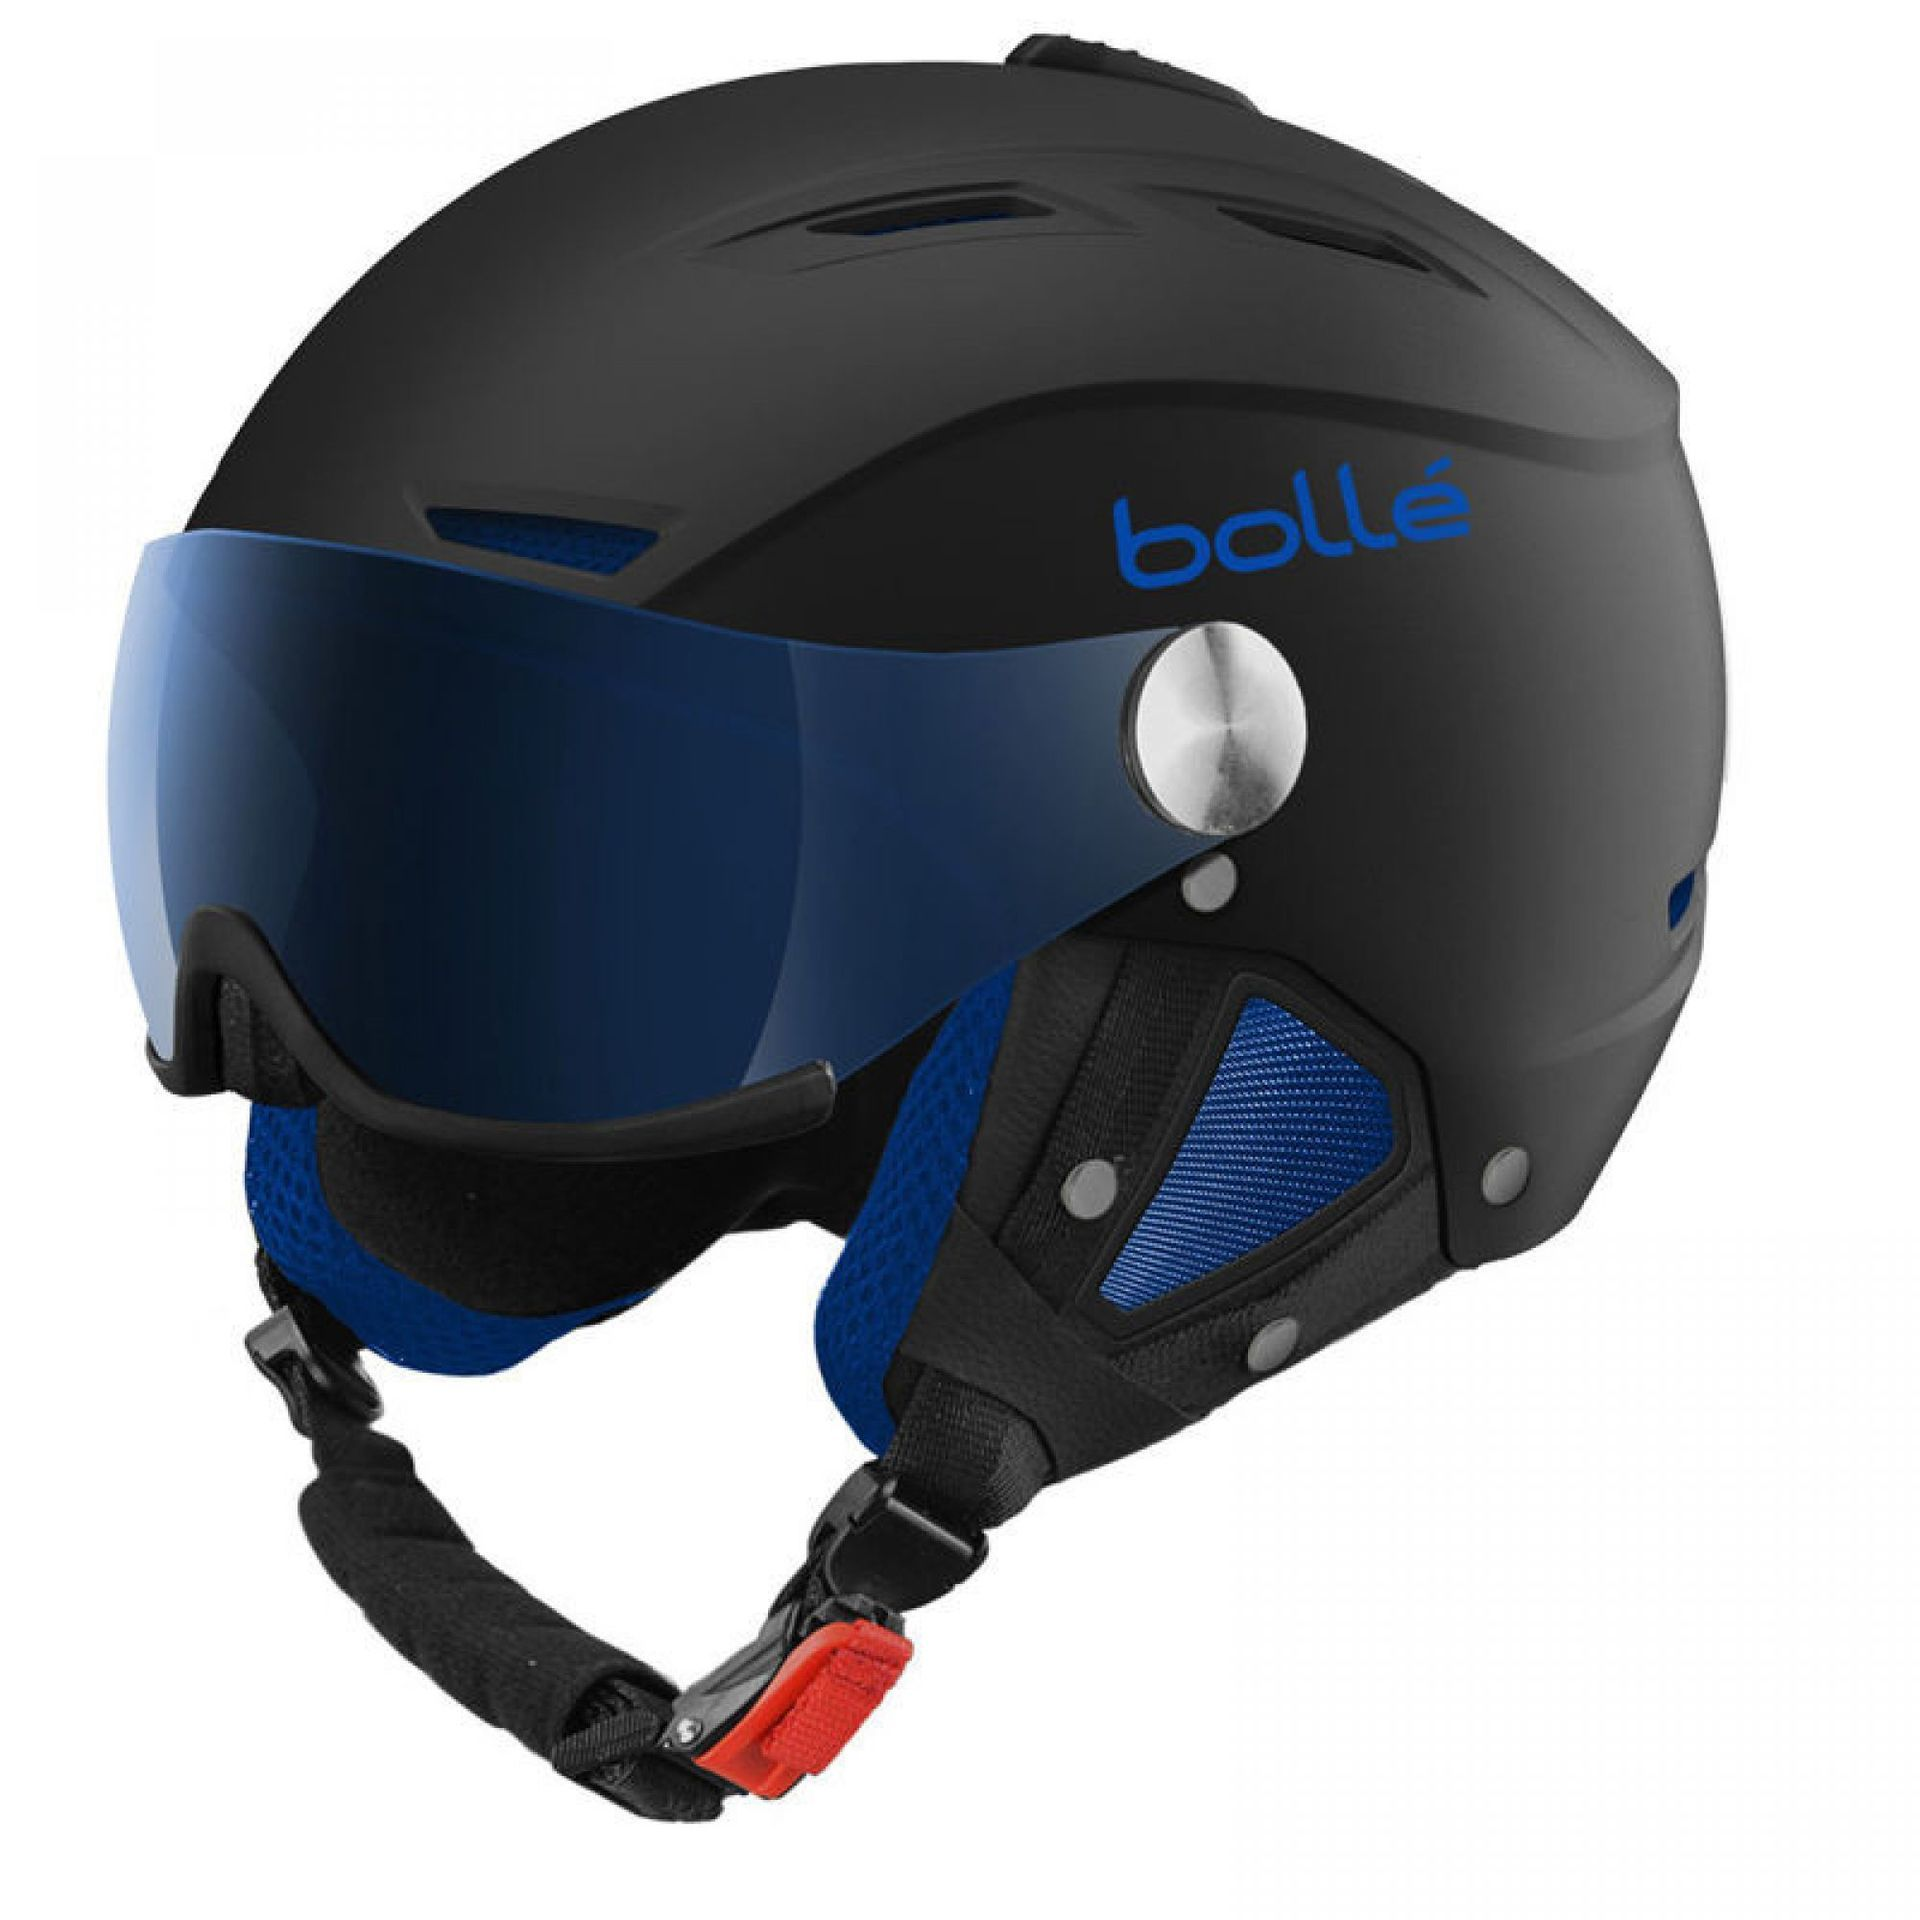 KASK BOLLE BACKLINE VISOR SOFT BLACK BLUE